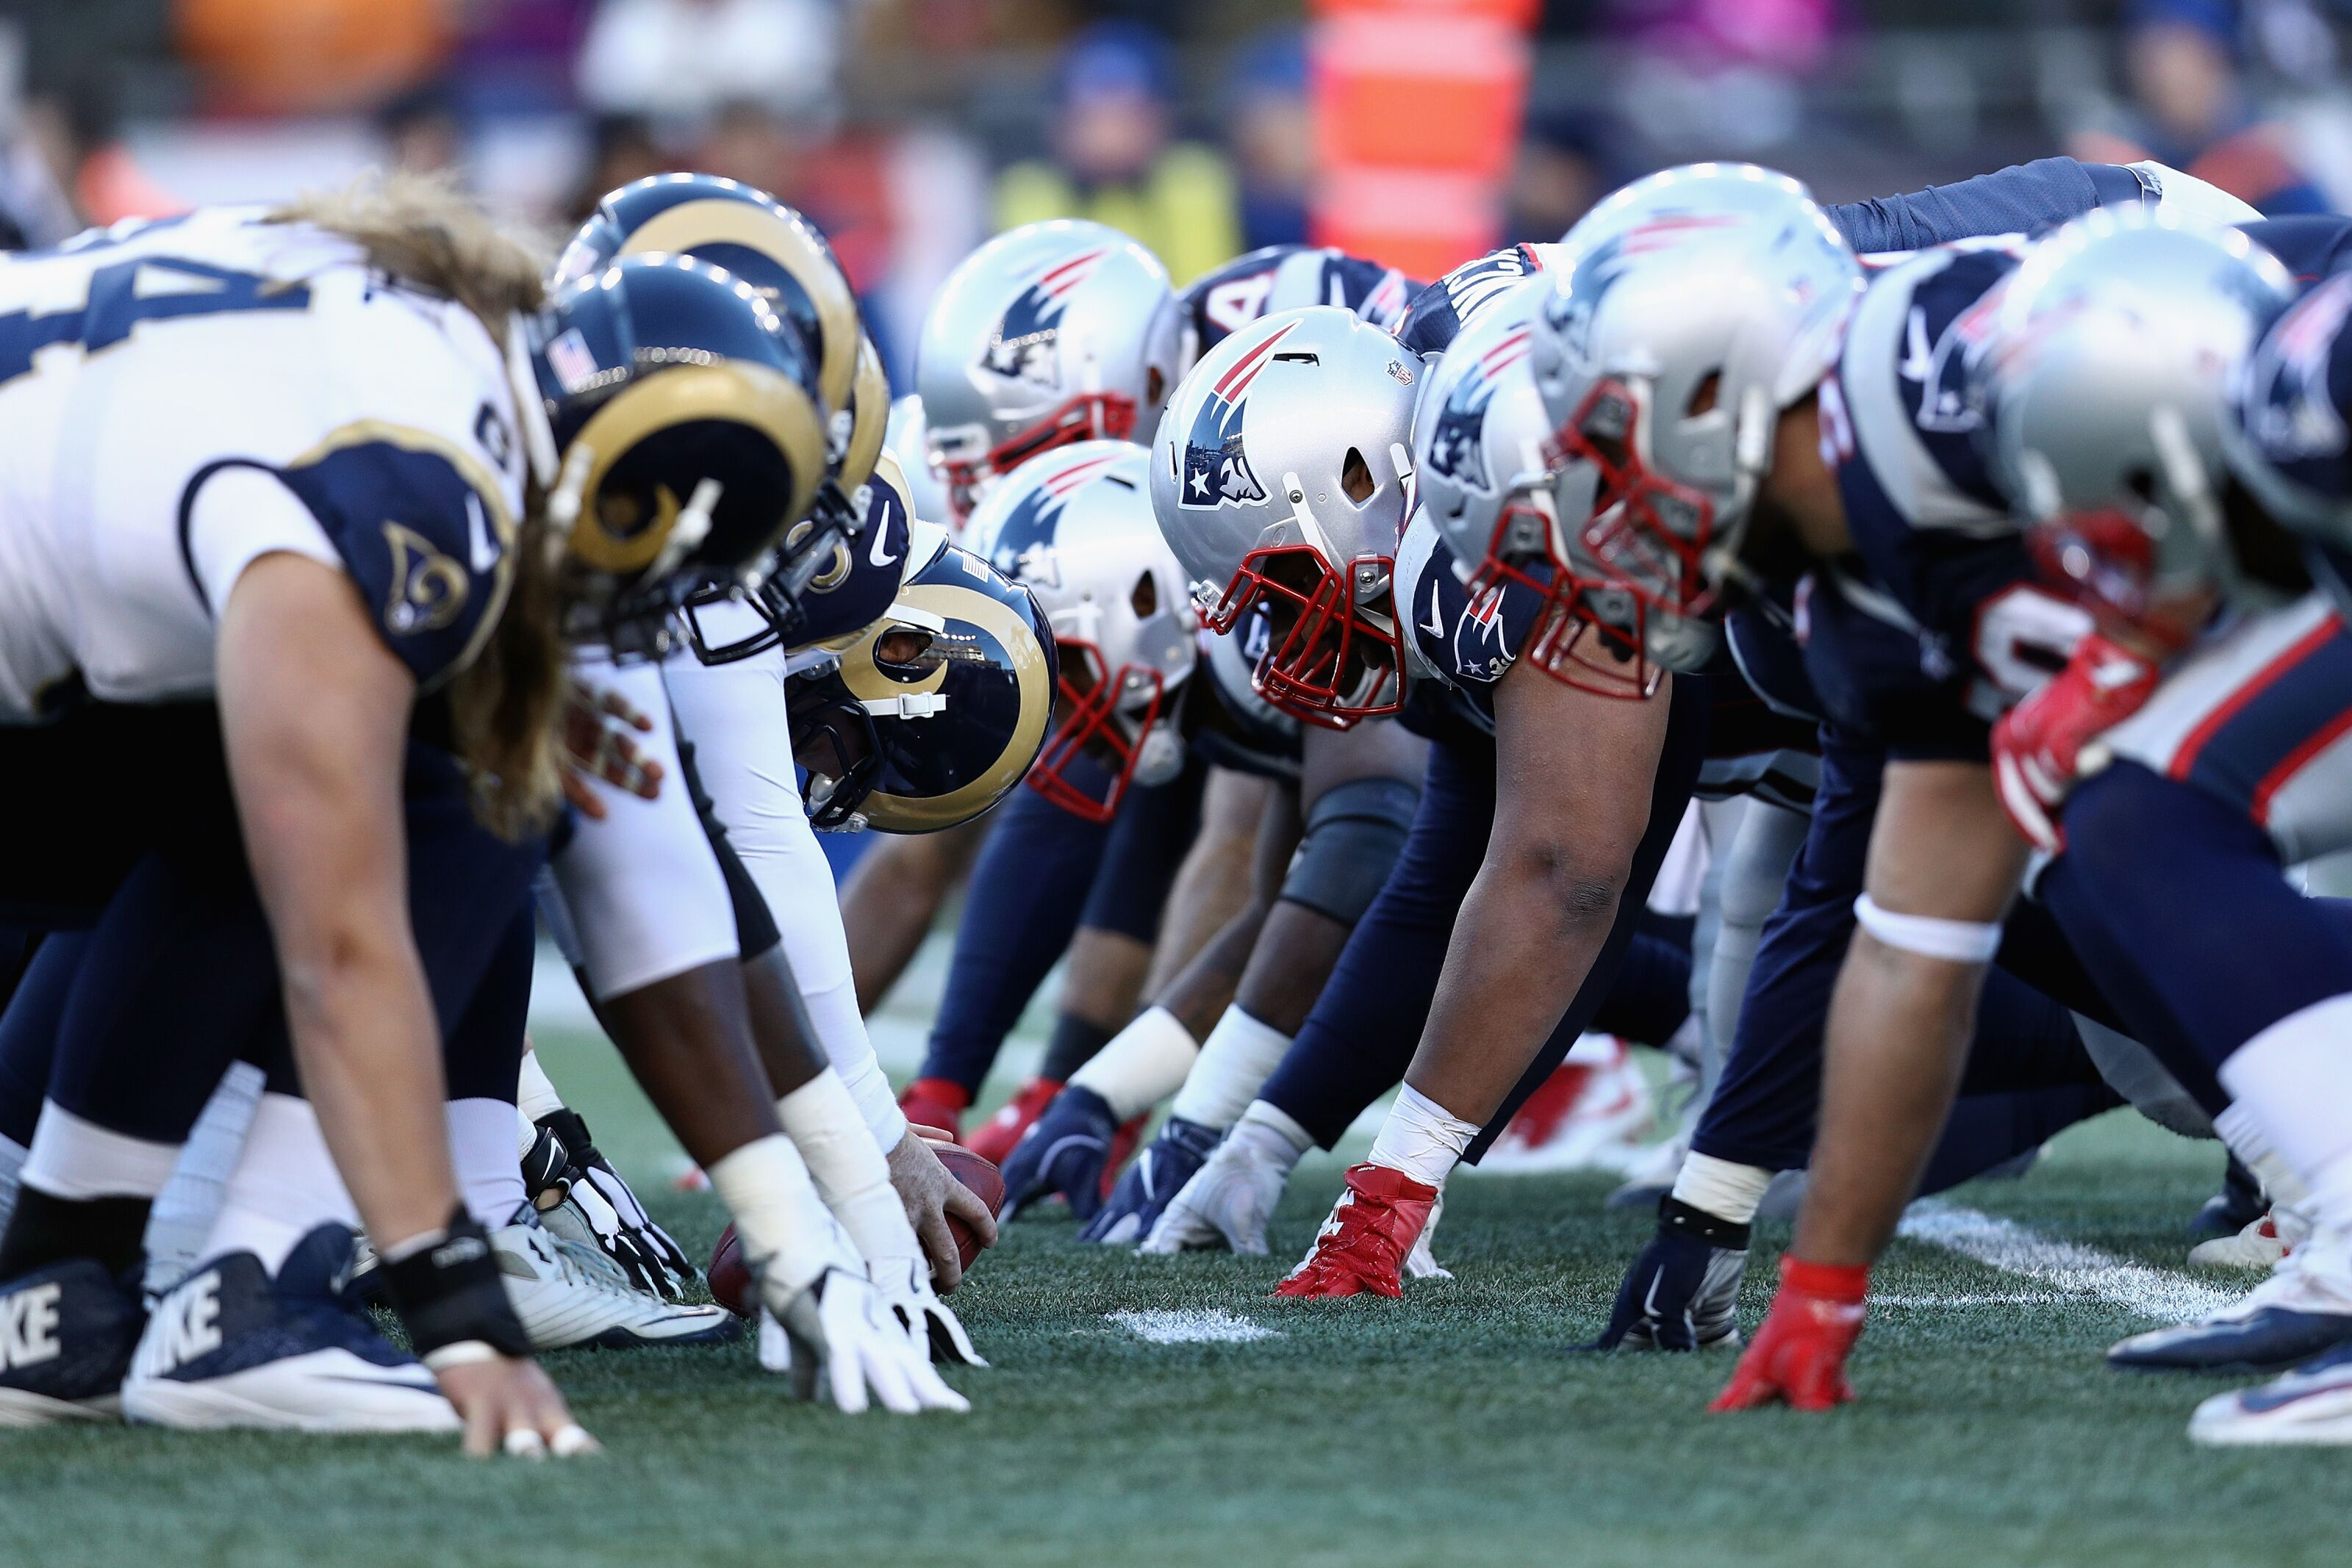 d3e22d236 New England Patriots: 5 Los Angeles Rams to watch in Super Bowl LIII - Page  2